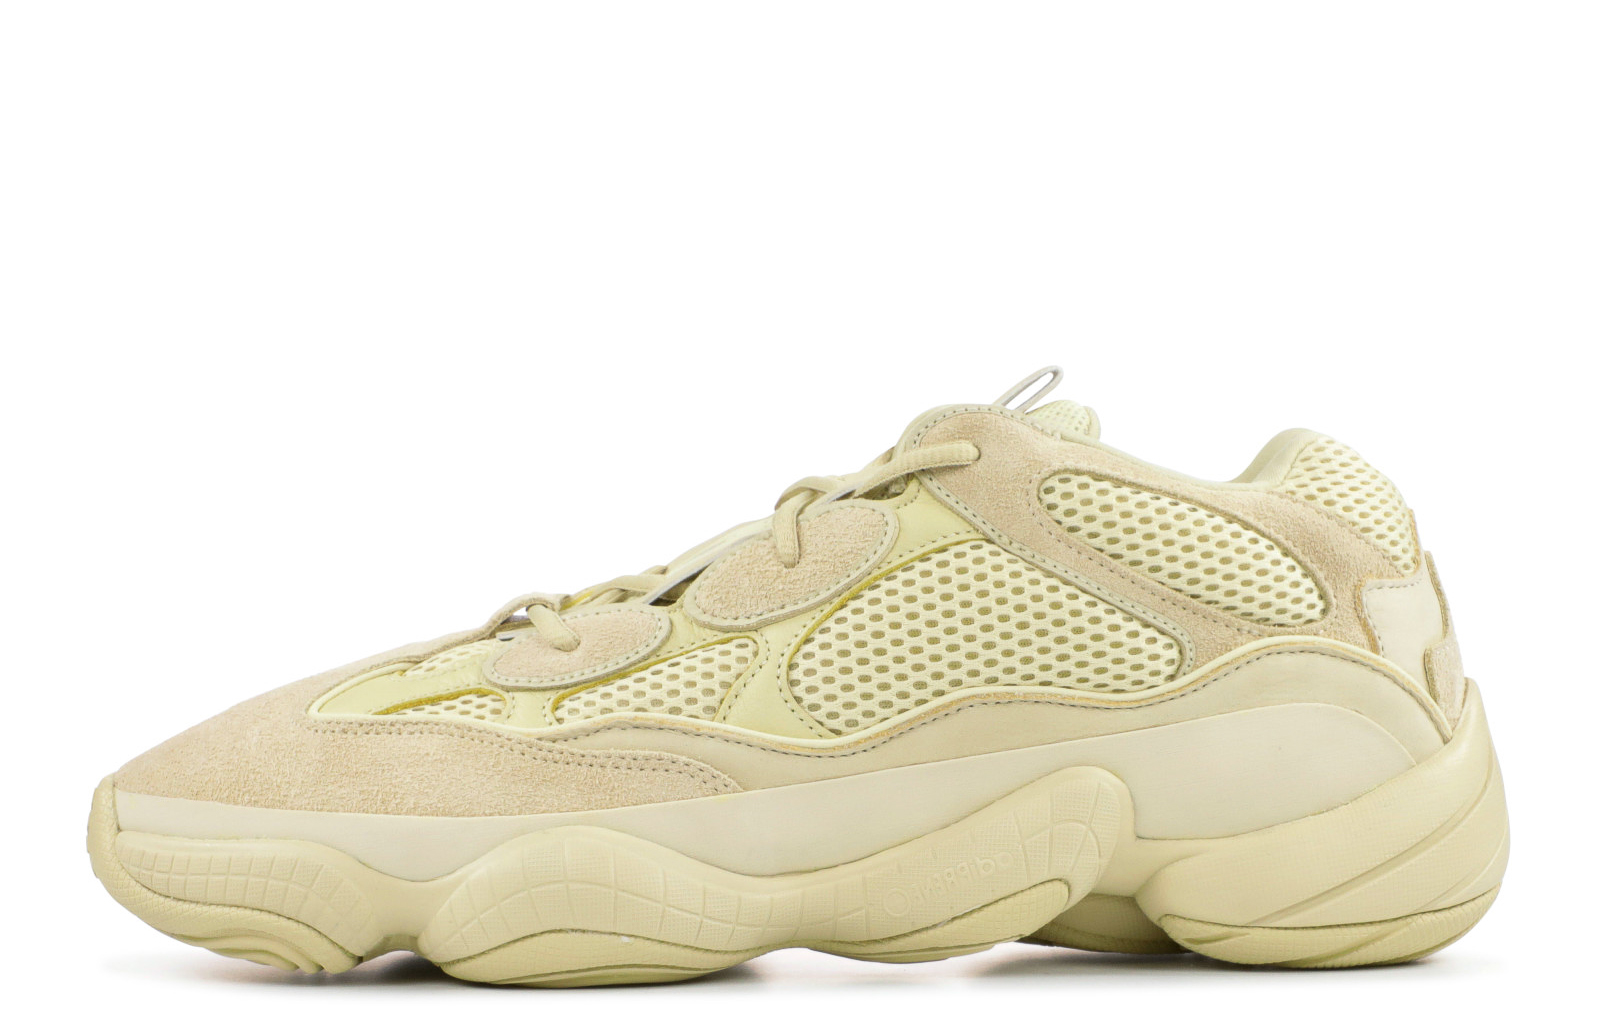 big sale f2934 e32d9 YEEZY 500 SUPER MOON YELLOW DB2966 [DB2966] - $125.95 ...